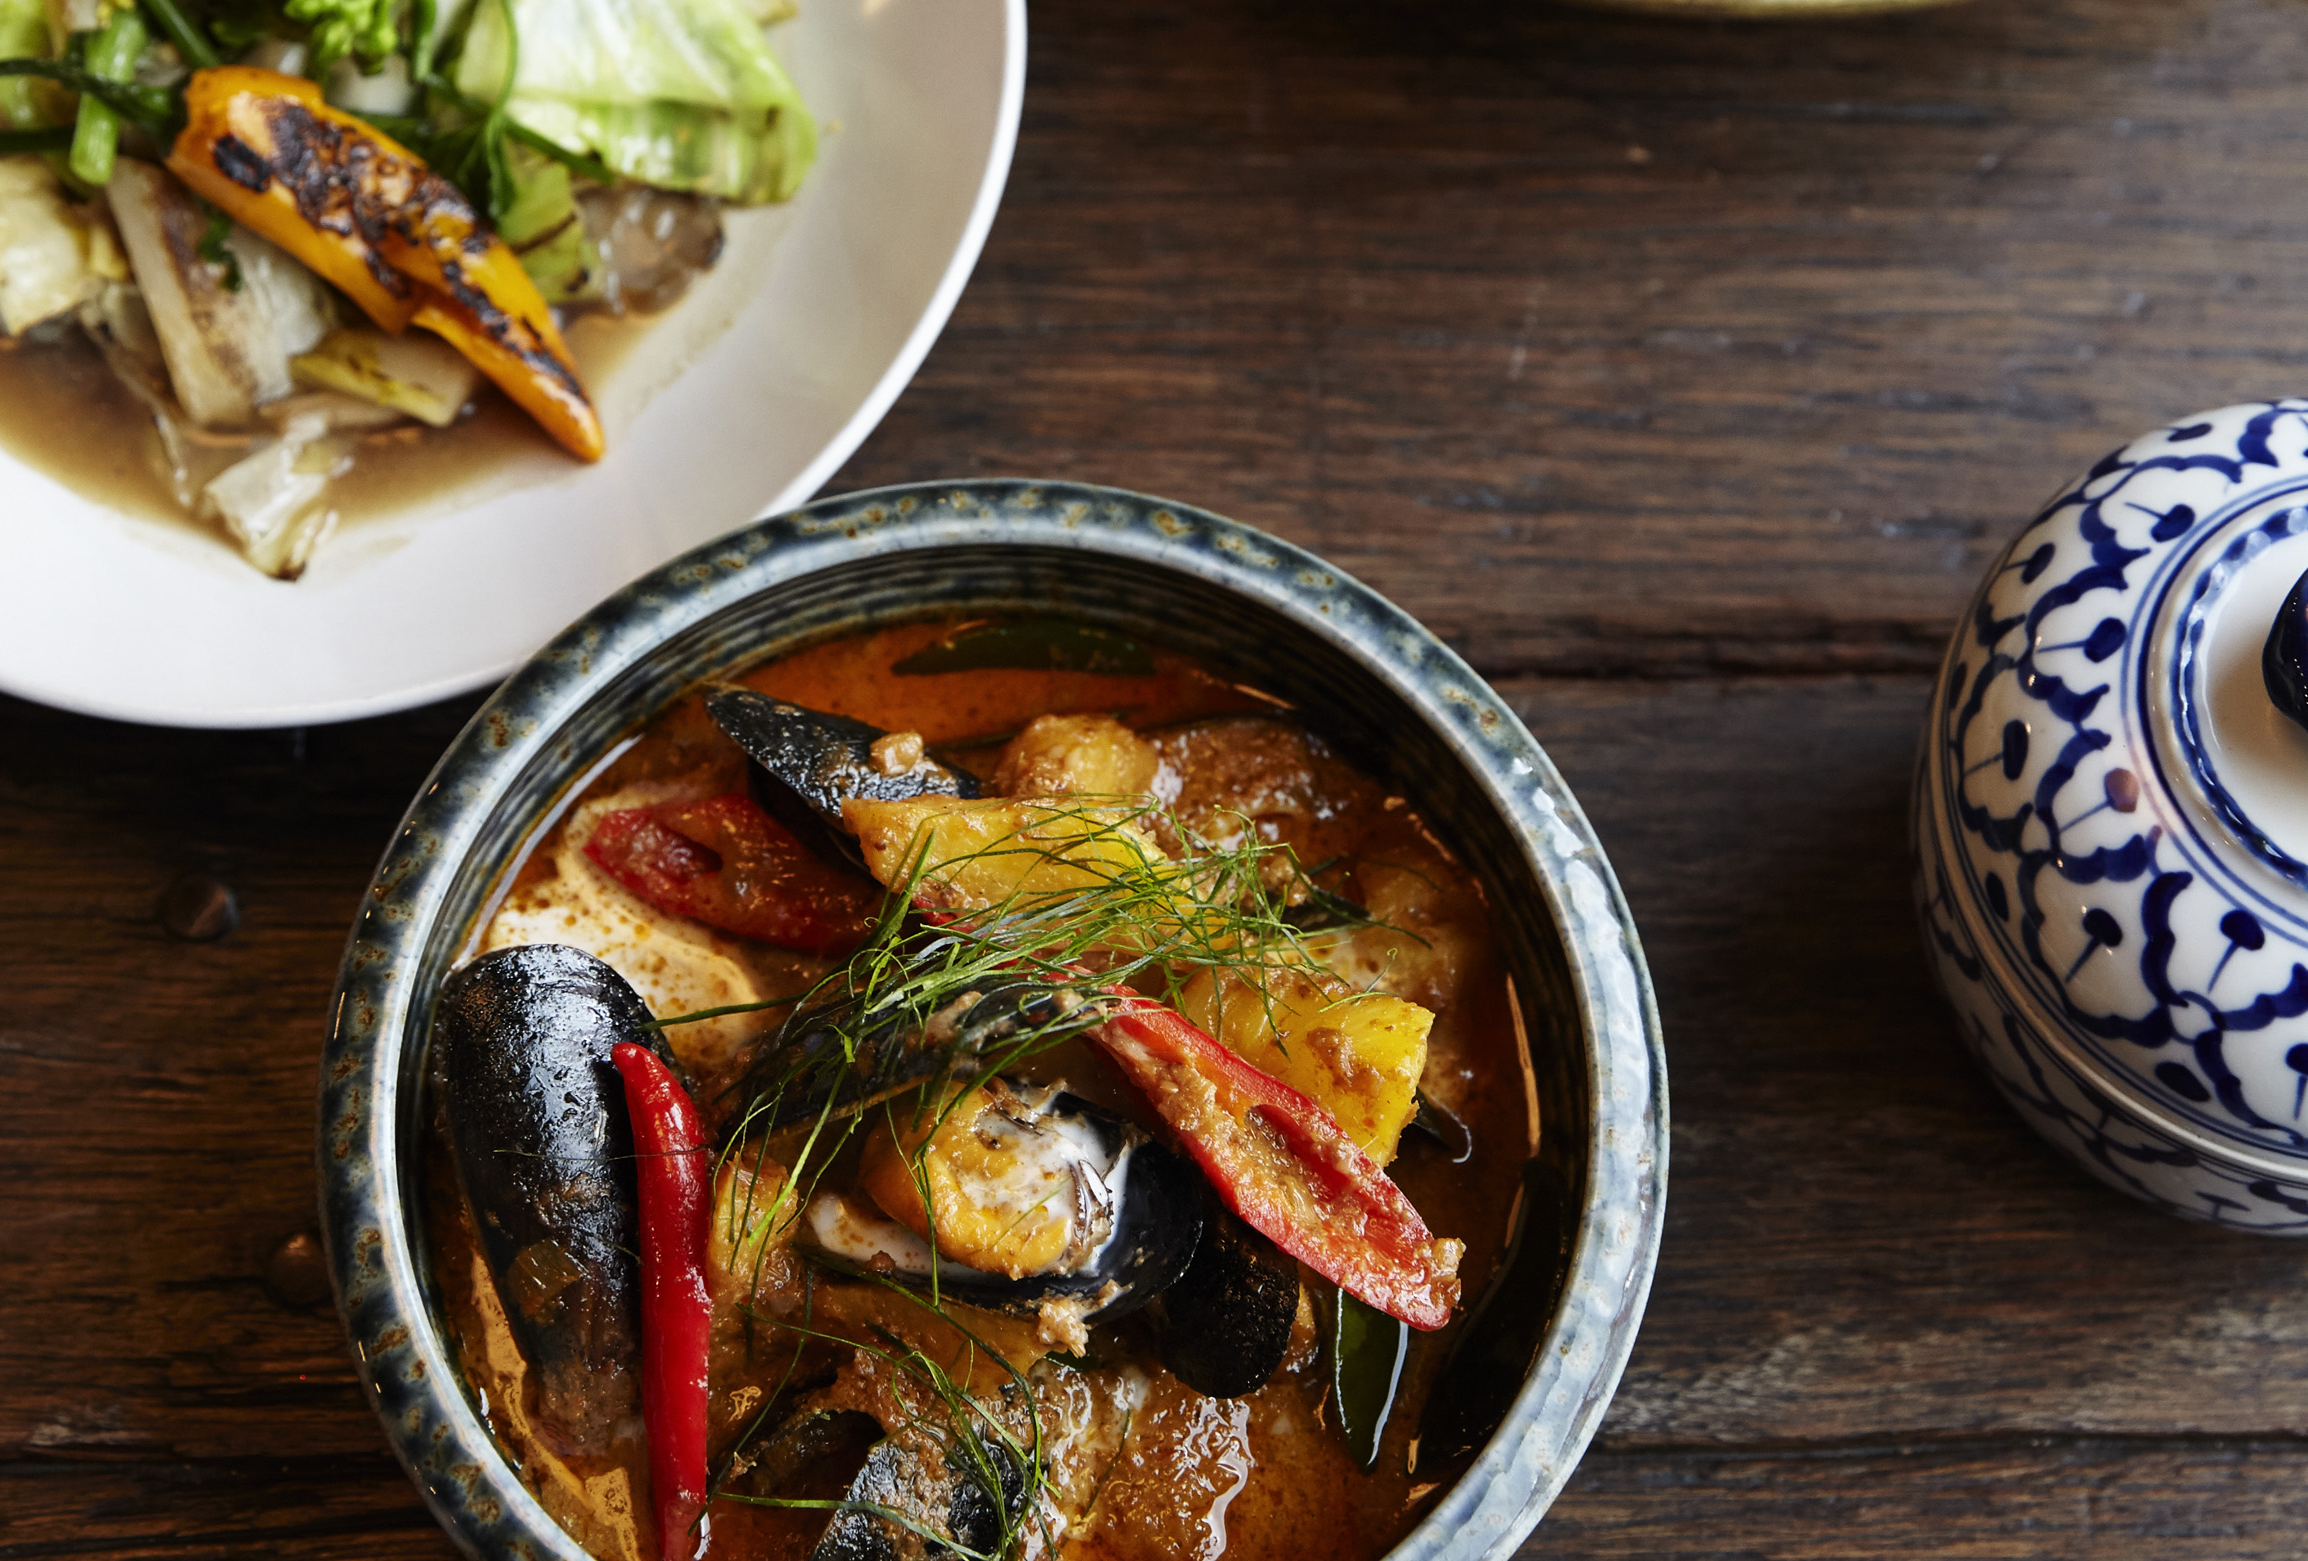 Som Saa and Andy Ricker of Pok Pok will do a London restaurant pop-up in August